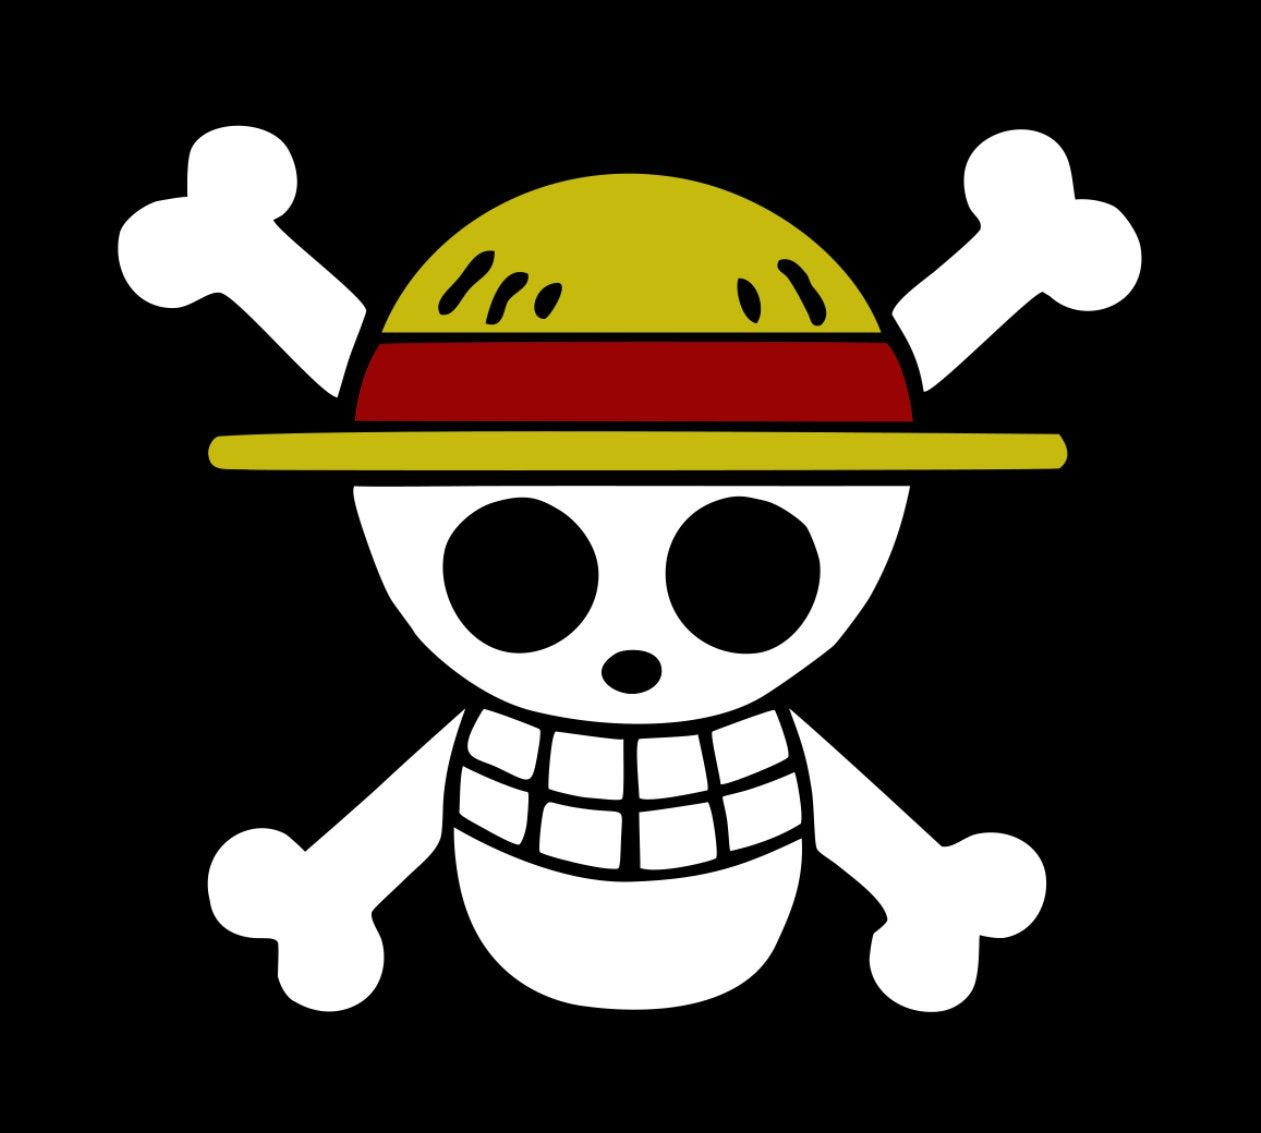 One Piece Luffy Flag Decal Sticker Logo Colorful Design Japanese Manga Comic Book Character Vin In 2020 One Piece Logo Manga Anime One Piece One Piece Wallpaper Iphone